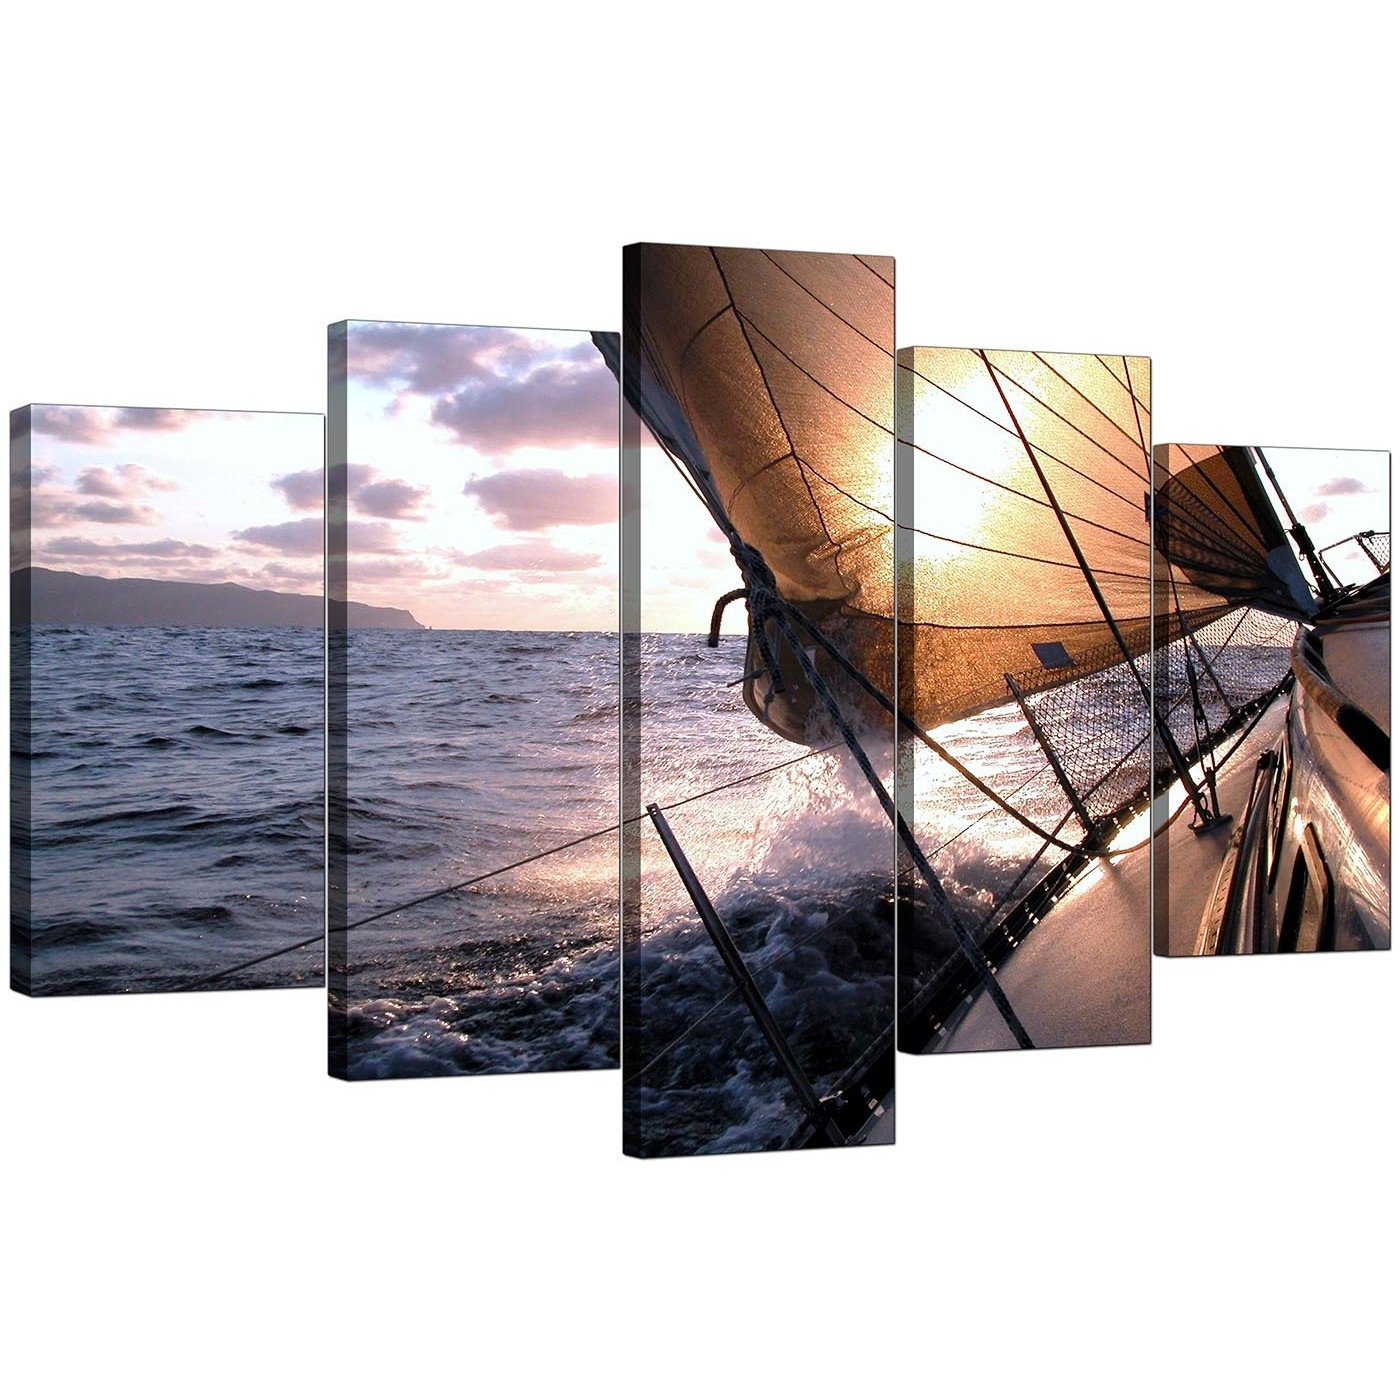 Boat Canvas Prints Uk For Your Living Room – 5 Piece Inside Latest 5 Piece Wall Art Canvas (View 7 of 15)